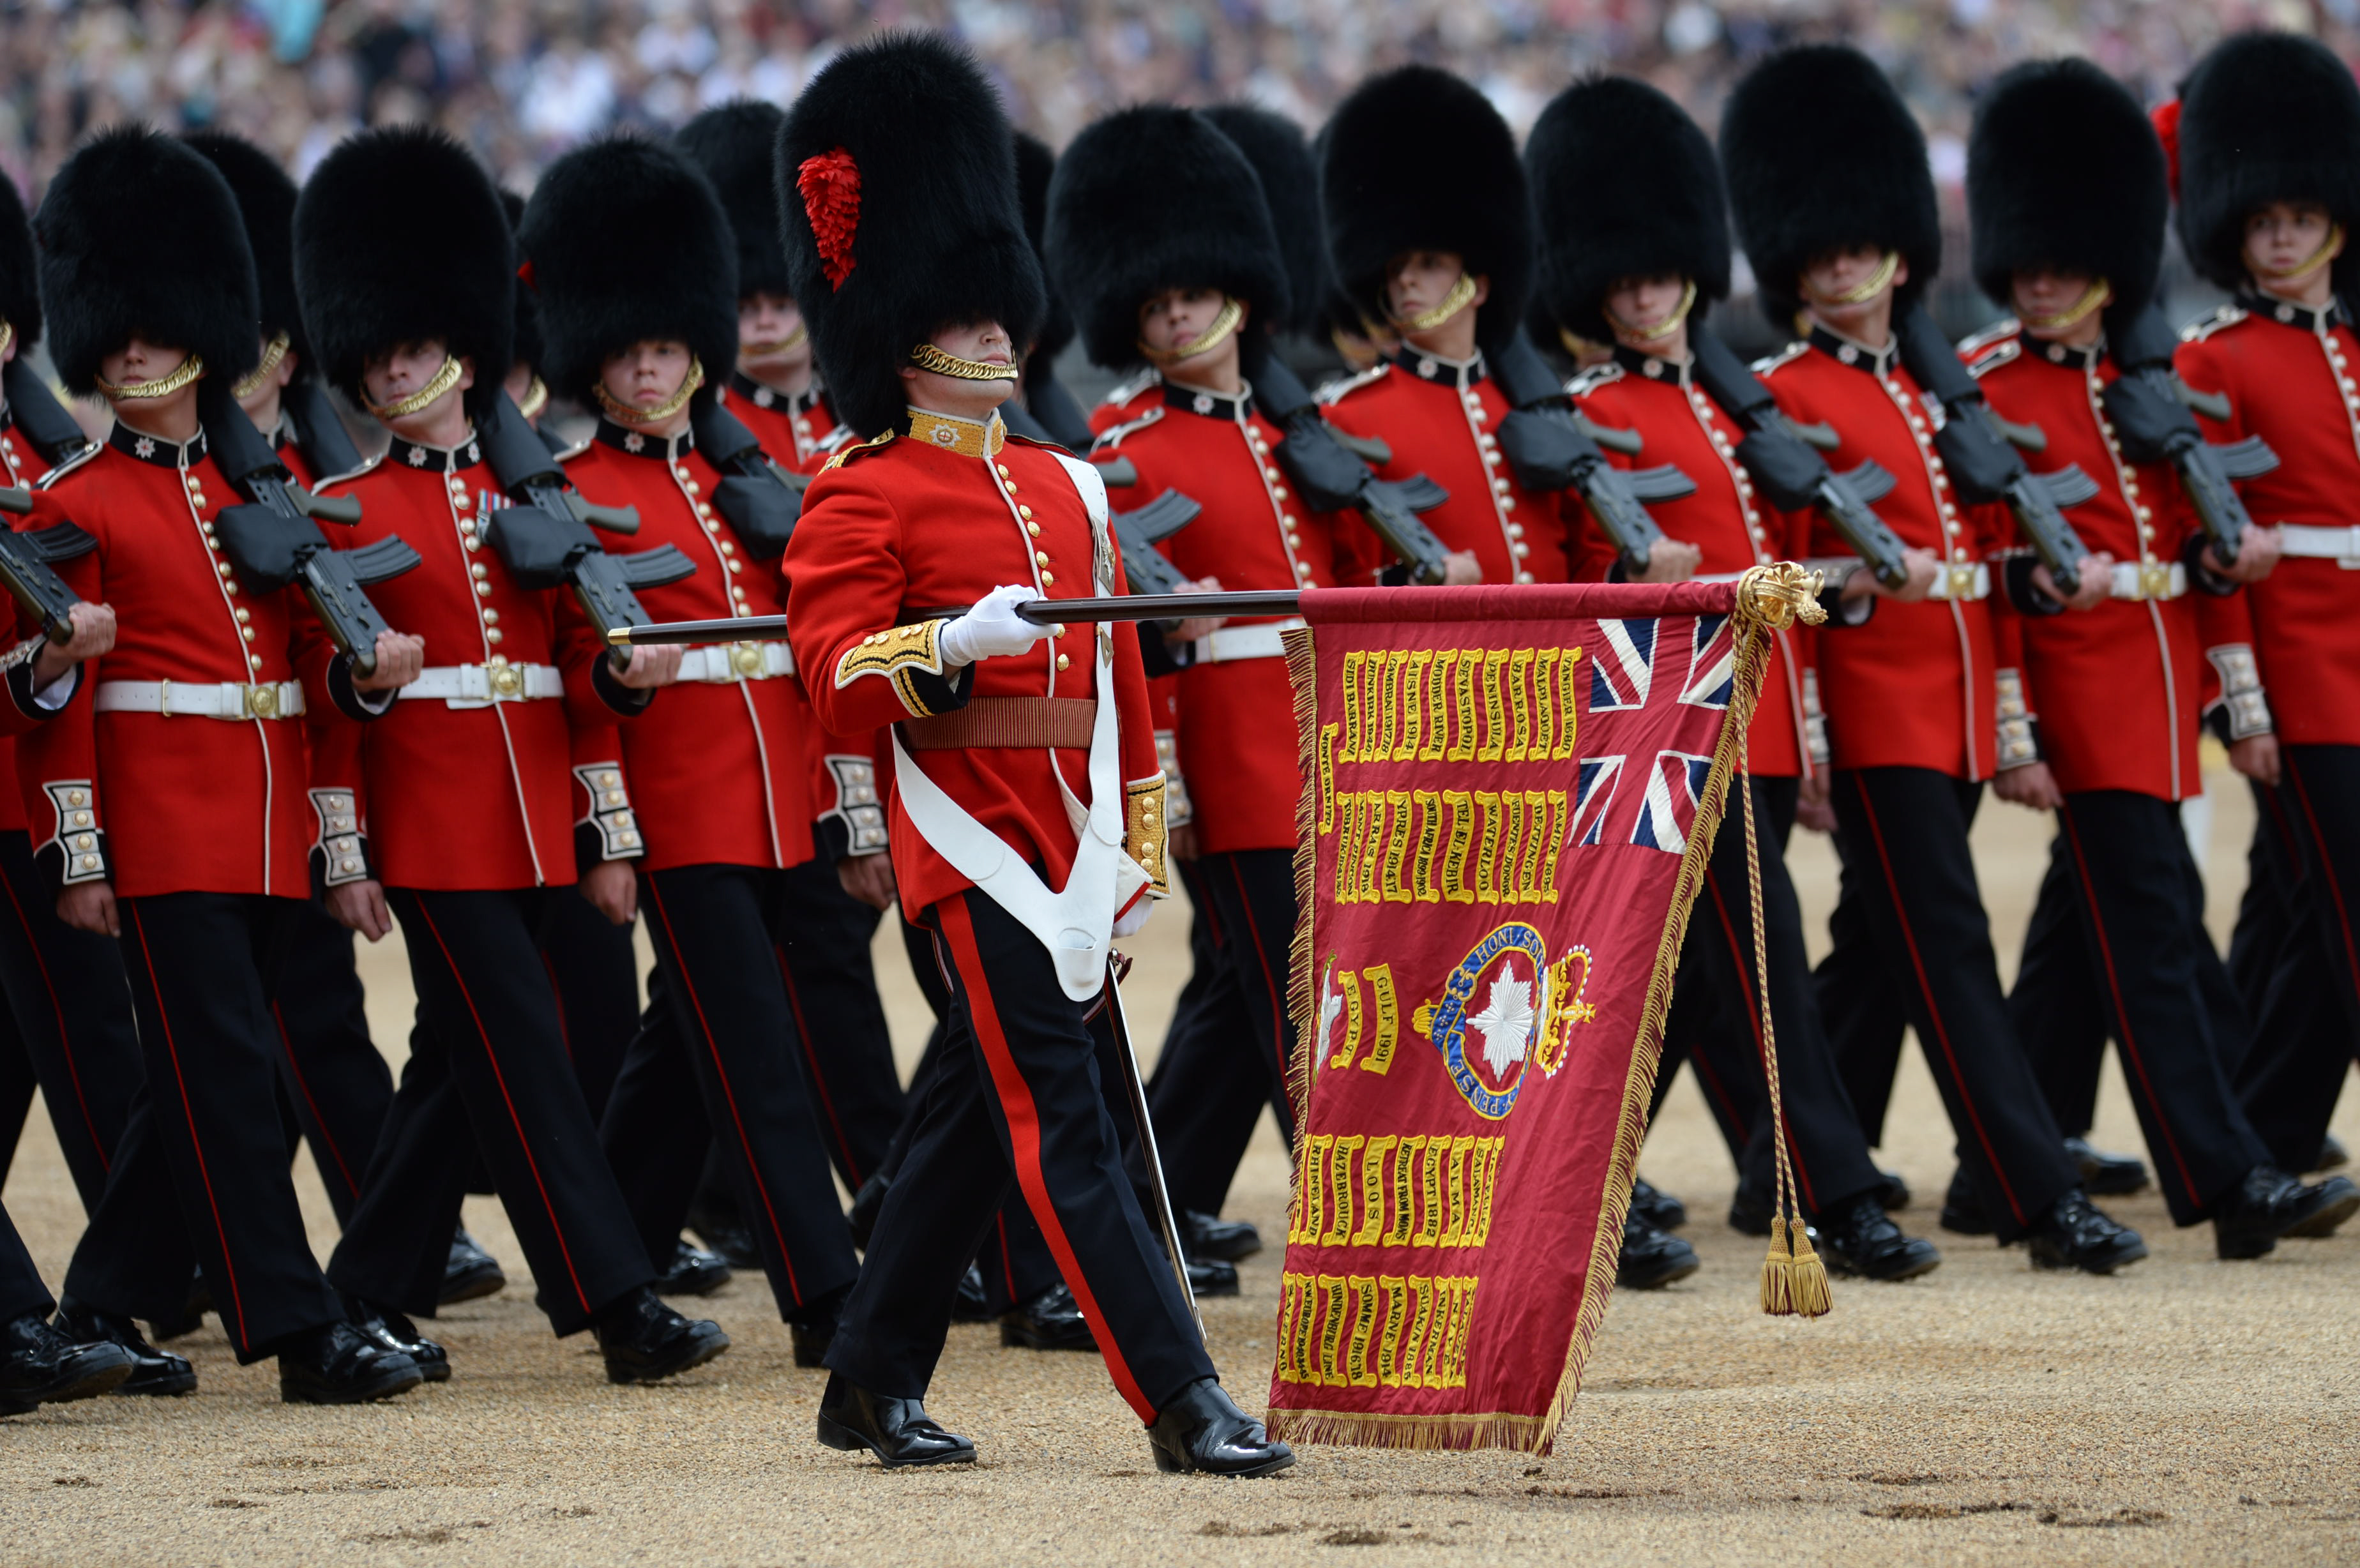 Almost fifteen hundred soldiers from the Household Division were on parade to mark the Queen's Official 90th Birthday on 11th June 2016 on Horse Guards Parade, at the ceremony known as Trooping the Colour. All the Royal Colonels accompanied Her with The Prince of Wales, The Duke of Cambridge, and The Princess Royal also riding on the parade. This year, the Colour being trooped in the presence of Her Majesty The Queen is that of Number 7 Company Coldstream Guards. The Field Officer in Brigade Waiting, Lieutenant Colonel James Thurstan, Coldstream Guards, commanded the Parade. The Soldiers were on parade in their traditional ceremonial uniforms of the Household Cavalry, Royal Horse Artillery, and Foot Guards. The musicians in the Household Cavalry Band and the Drum Majors were in their priceless Gold Coats. There was more than 300 horses on parade, and musicians from all the Household Division Bands & Corps of Drums marched and played as one. The famous Drum Horses of the Household Cavalry Band carrying priceless antique solid silver drums weighing 80lbs each were also on parade.